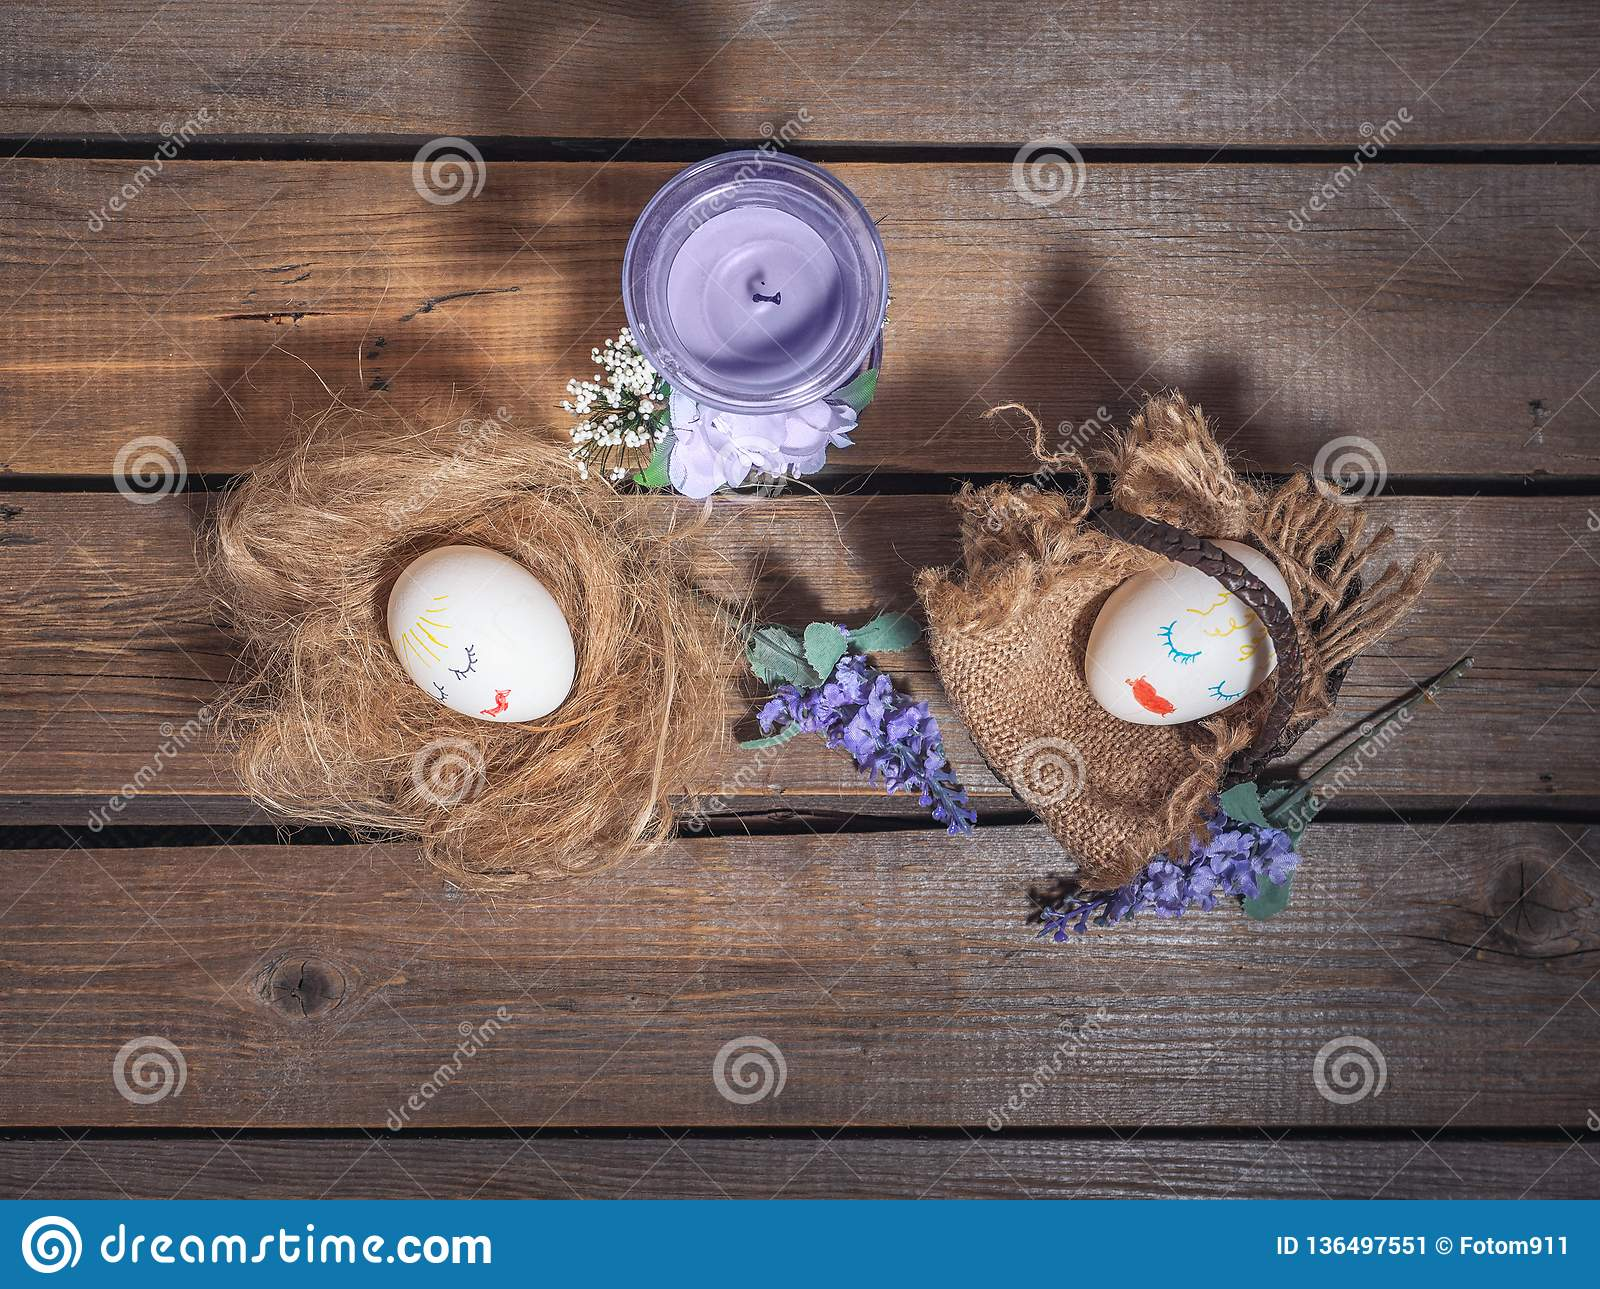 Funny picture for Easter. Eggs with painted faces. Basket and straw, next are sprigs of flowers on a wooden background